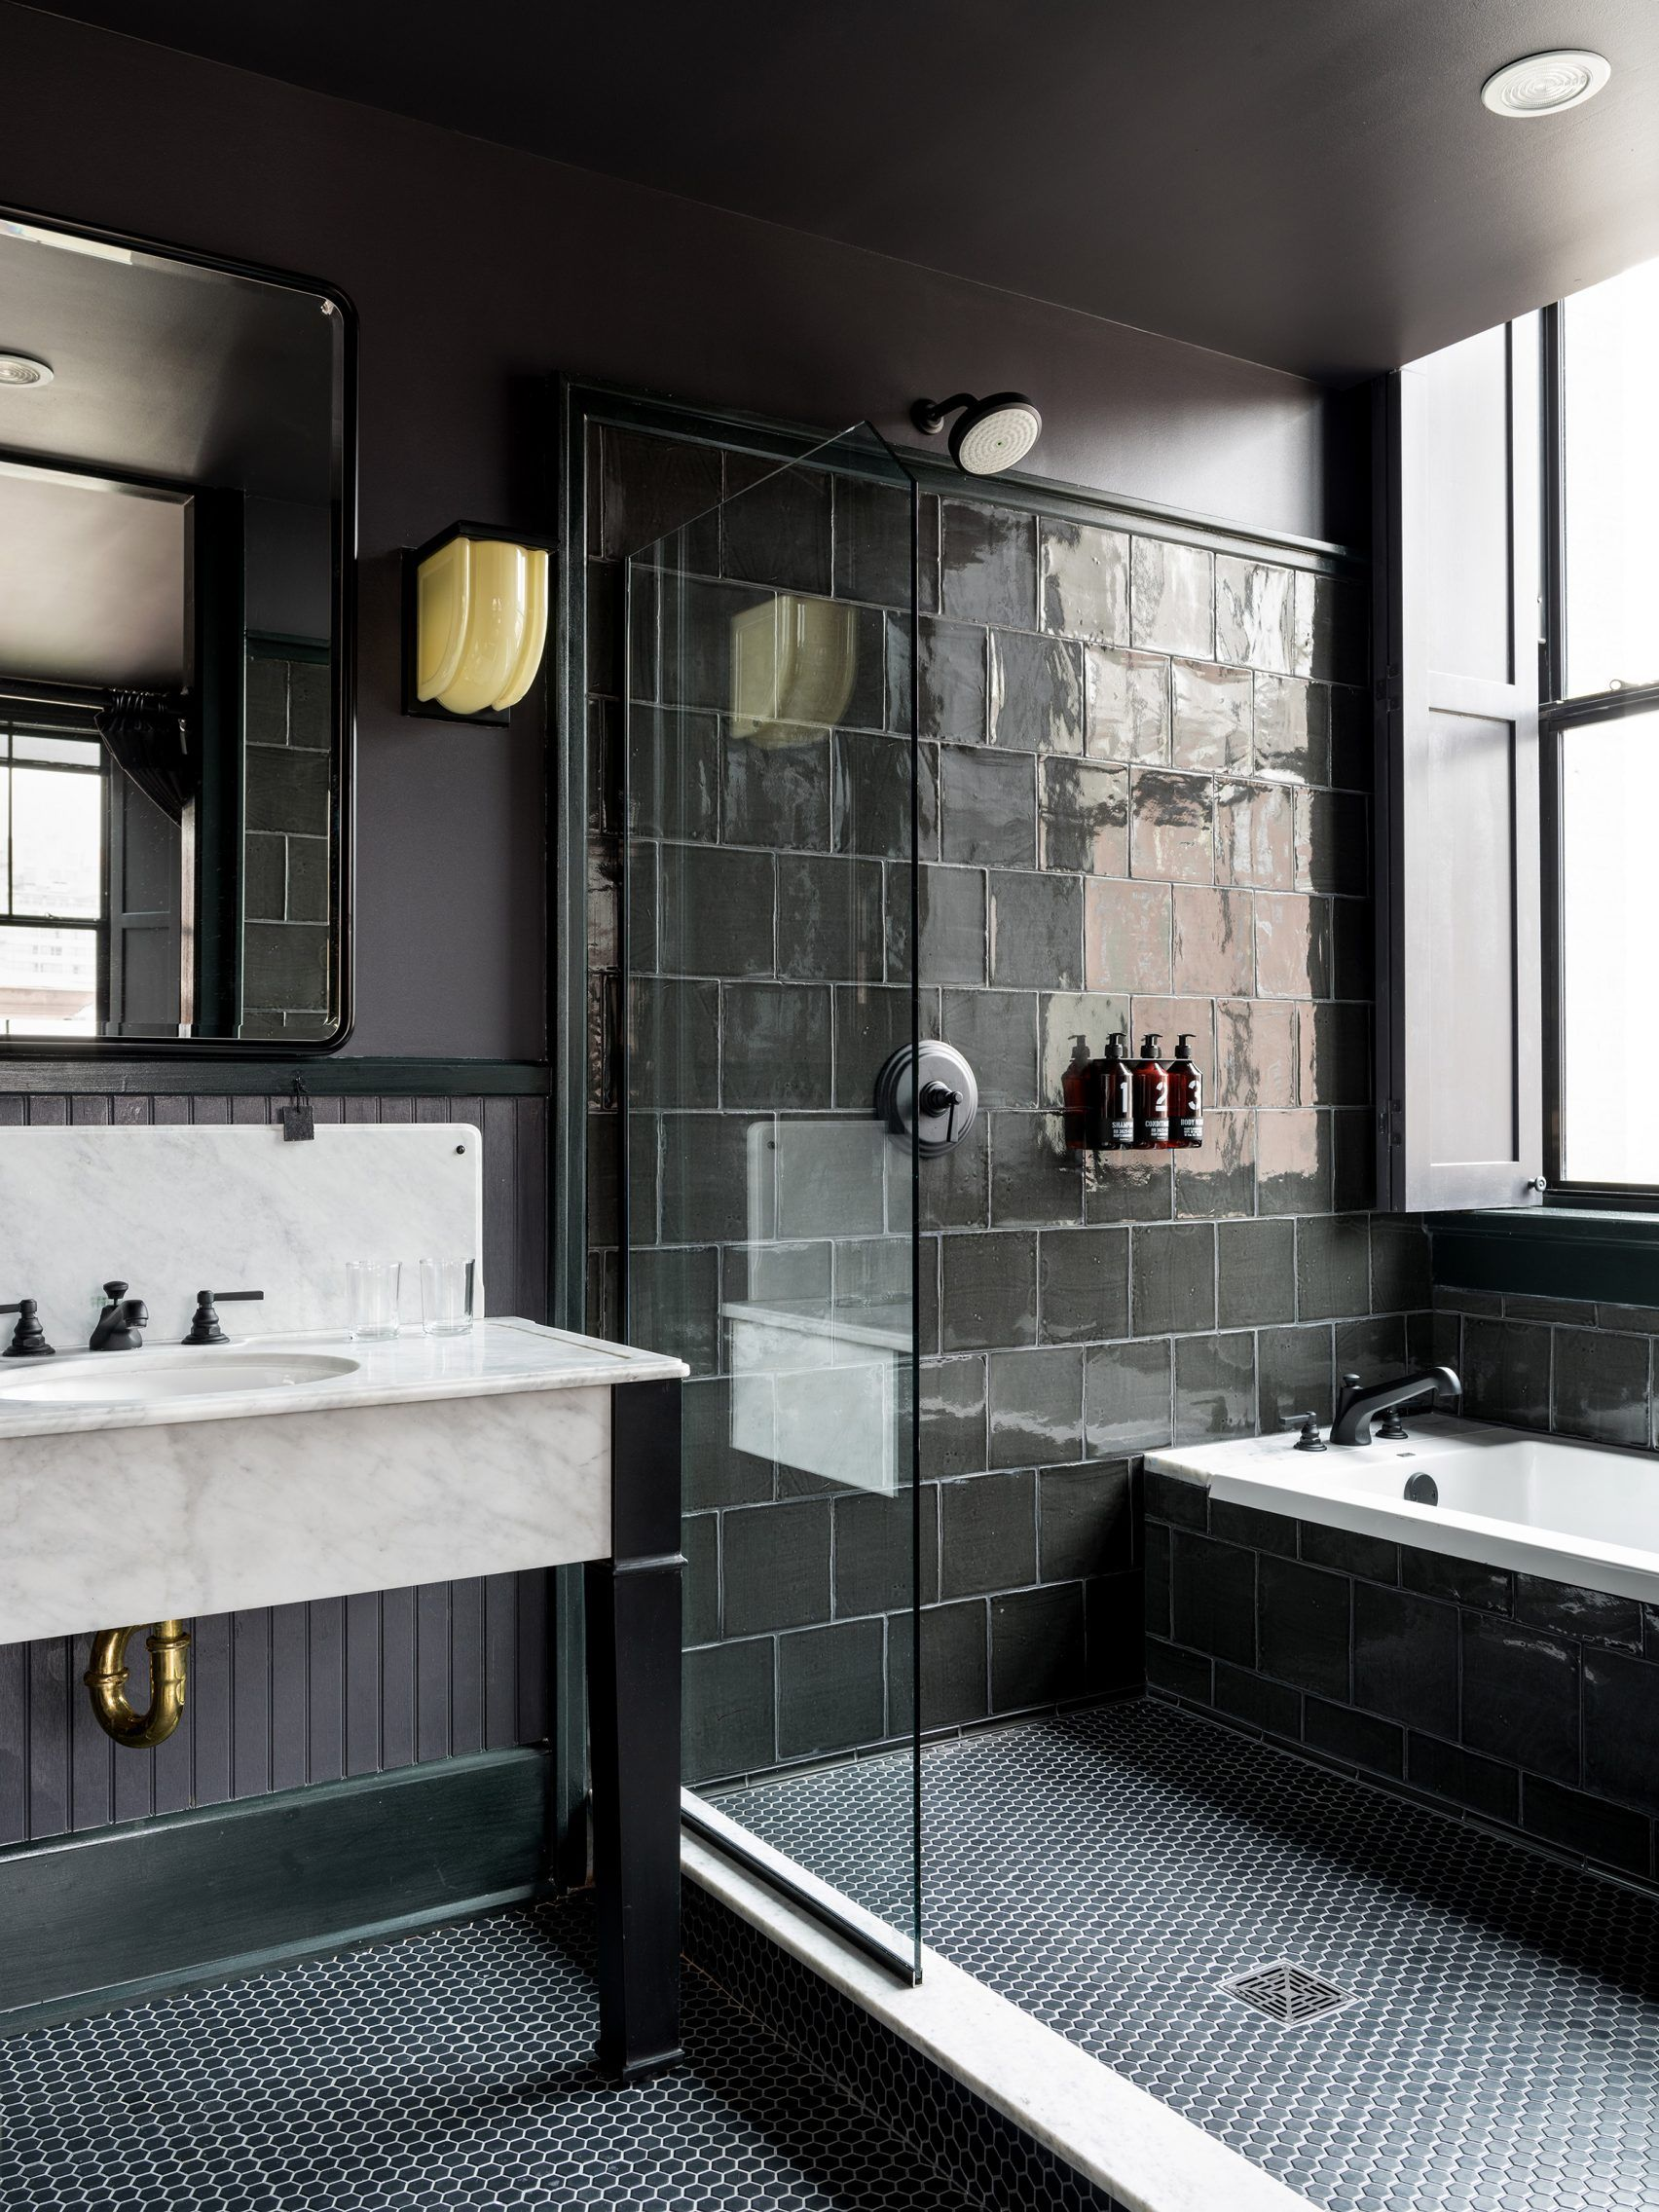 Ace Hotel New Orleans By Eskew Dumez Ripple Interiors